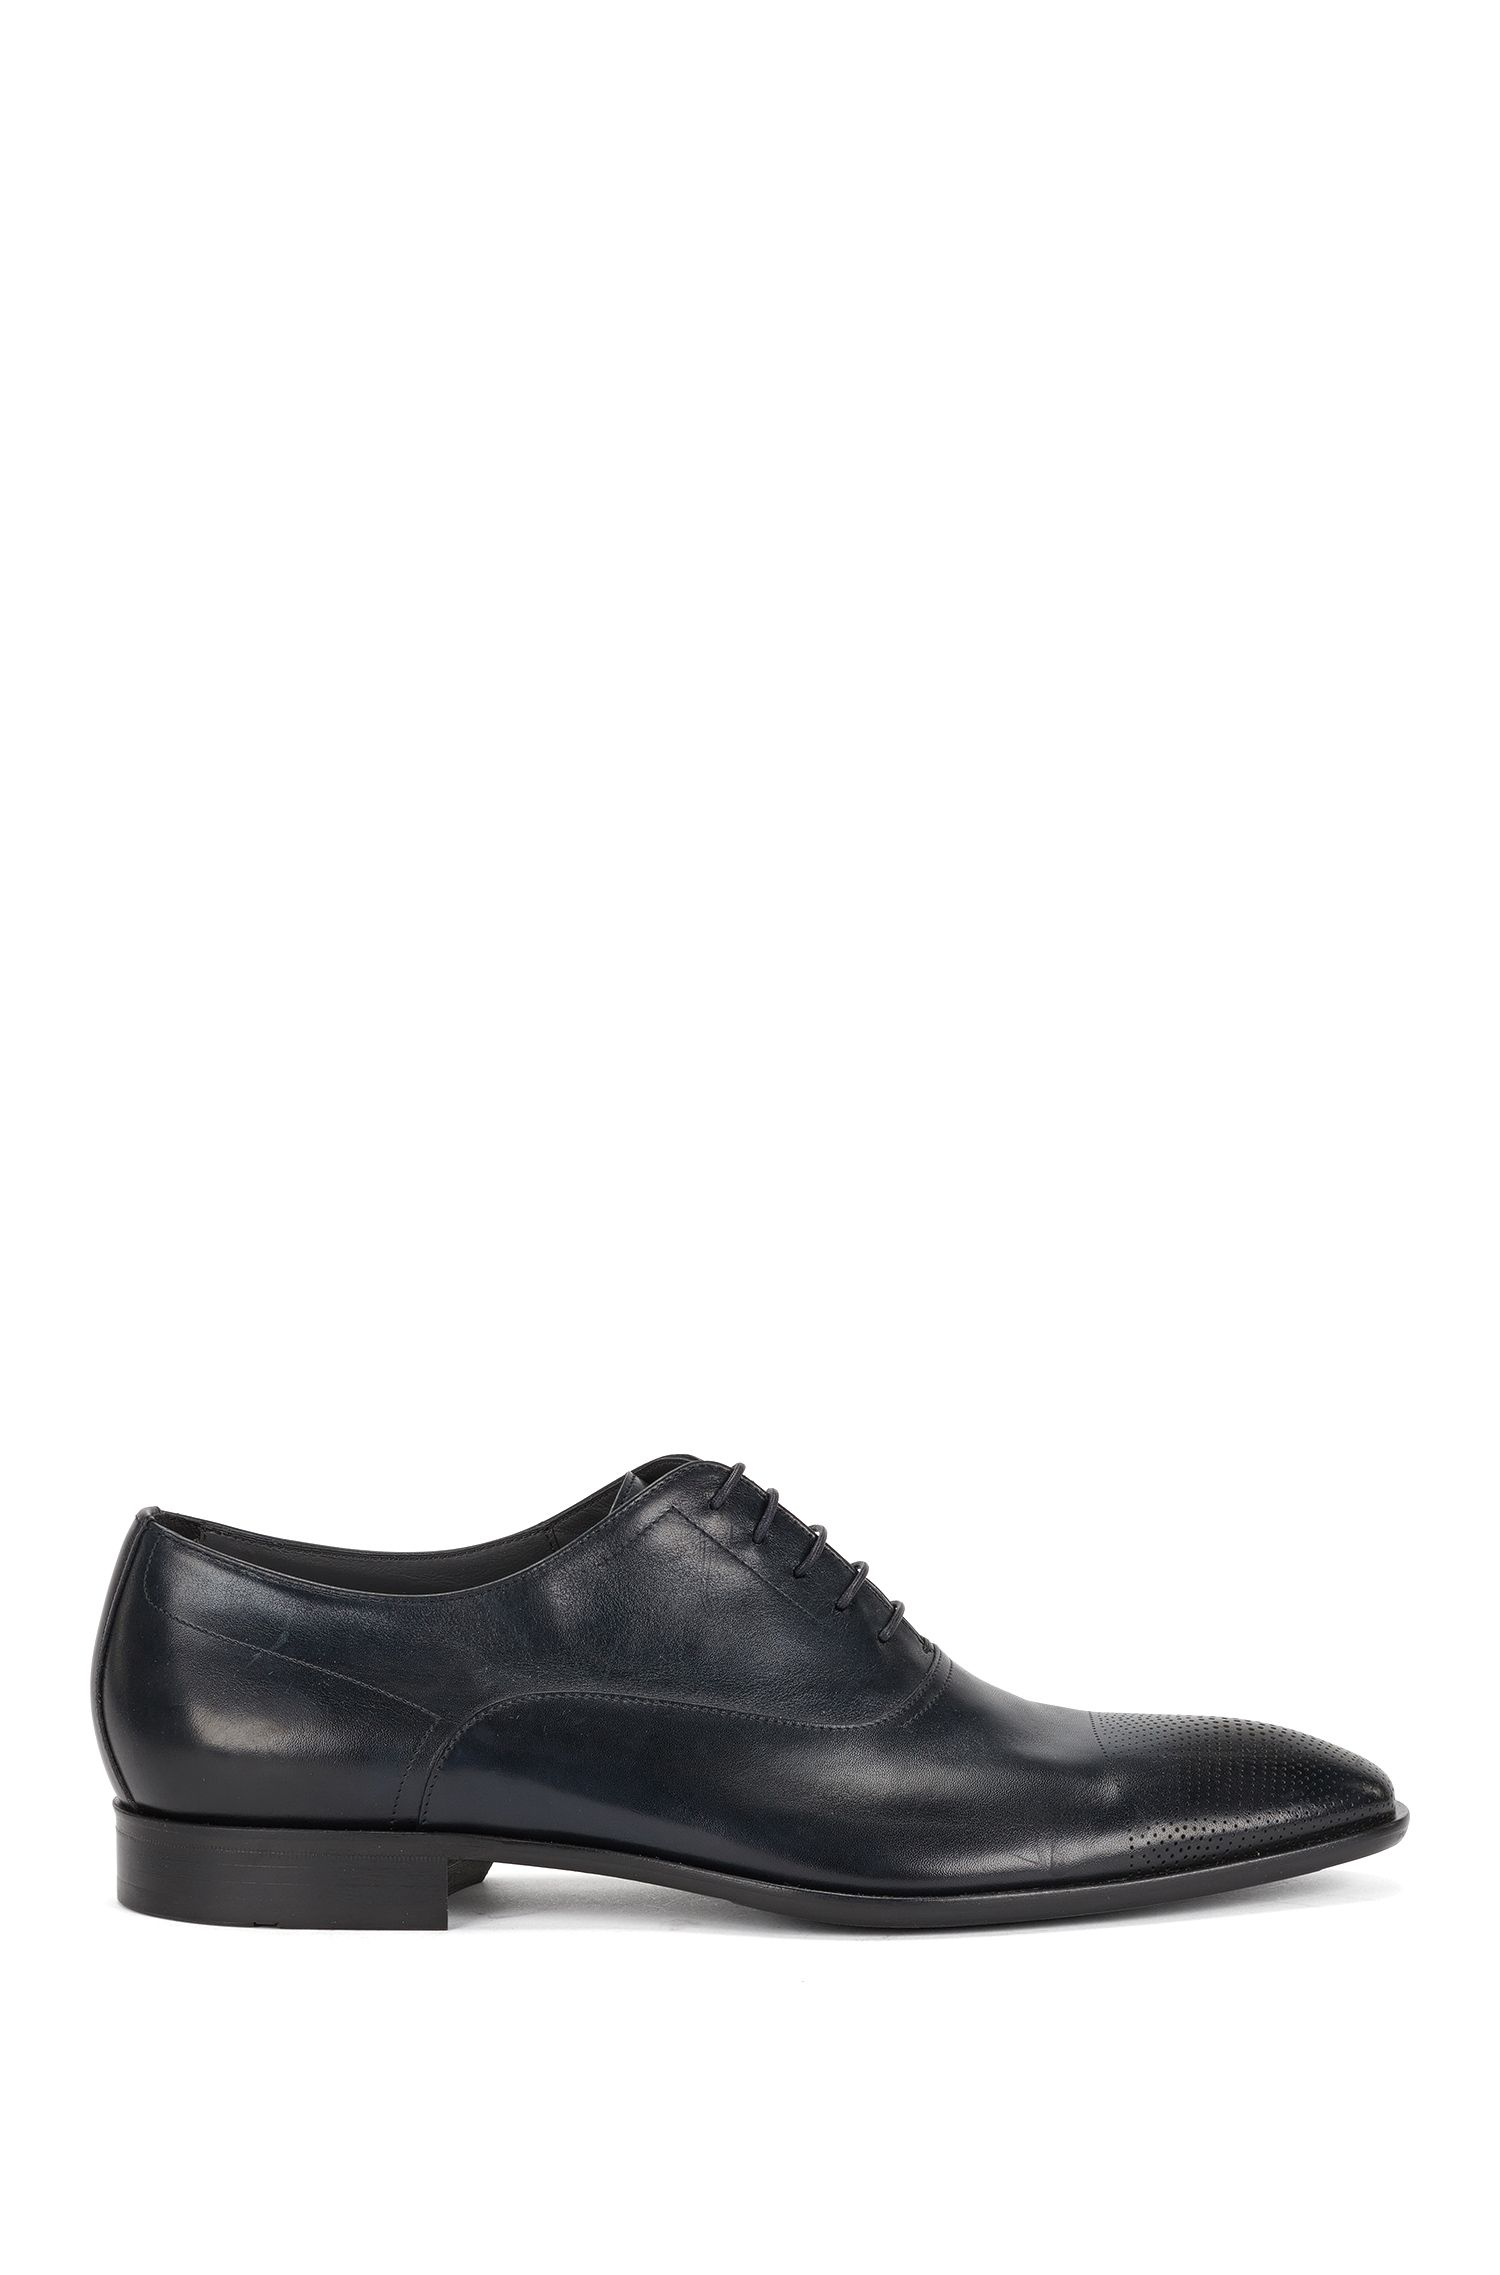 Leather lace-up shoes with perforated toes: 'Chelsea_Oxfr_ltct'